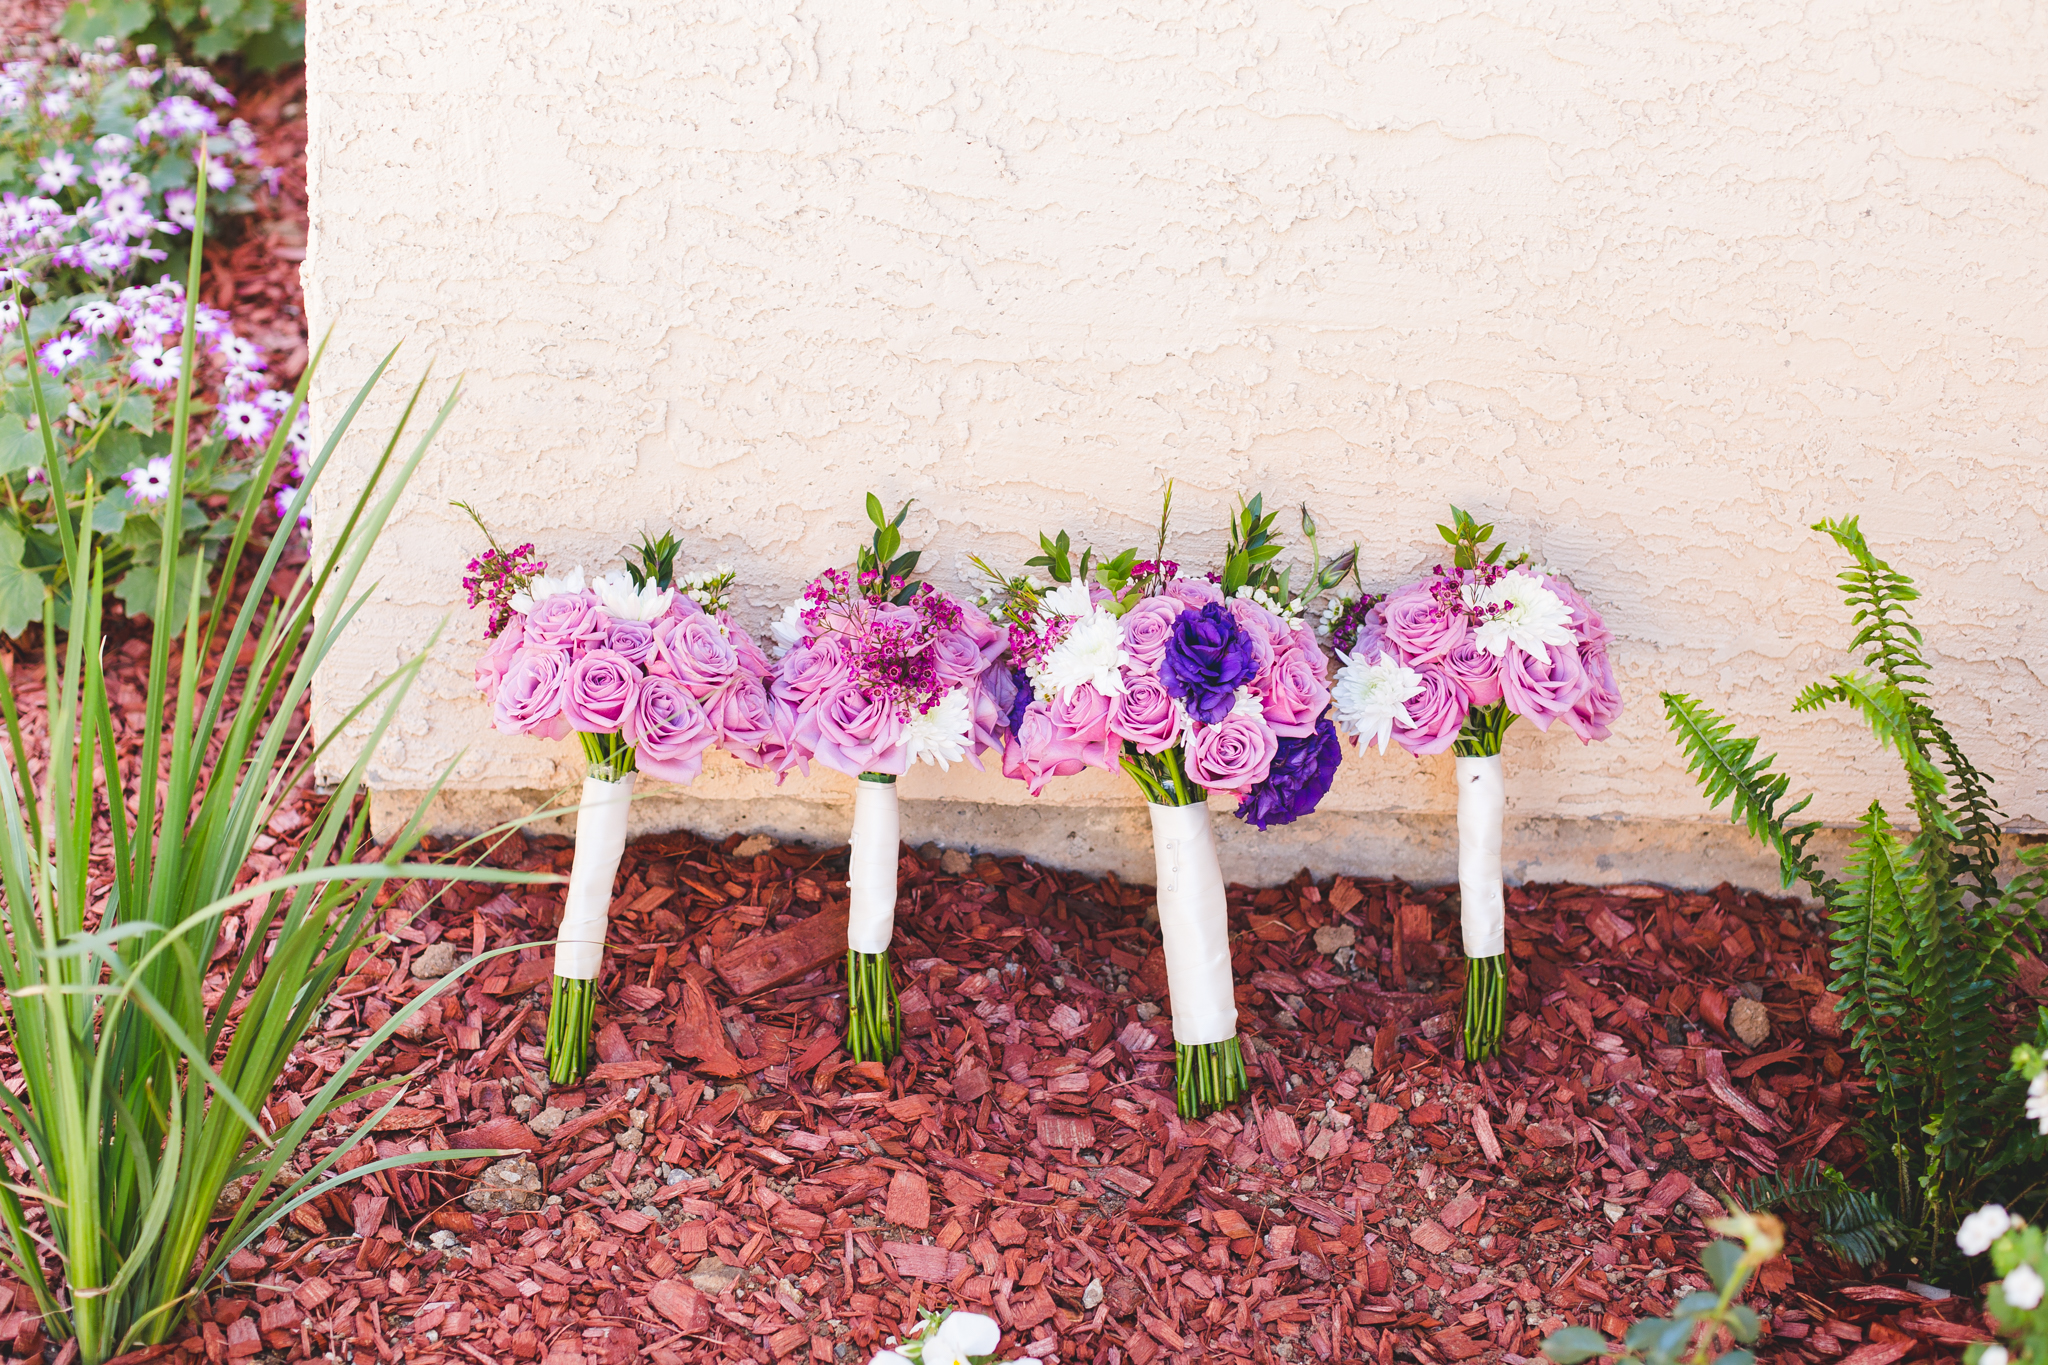 sd flowers leaning against house